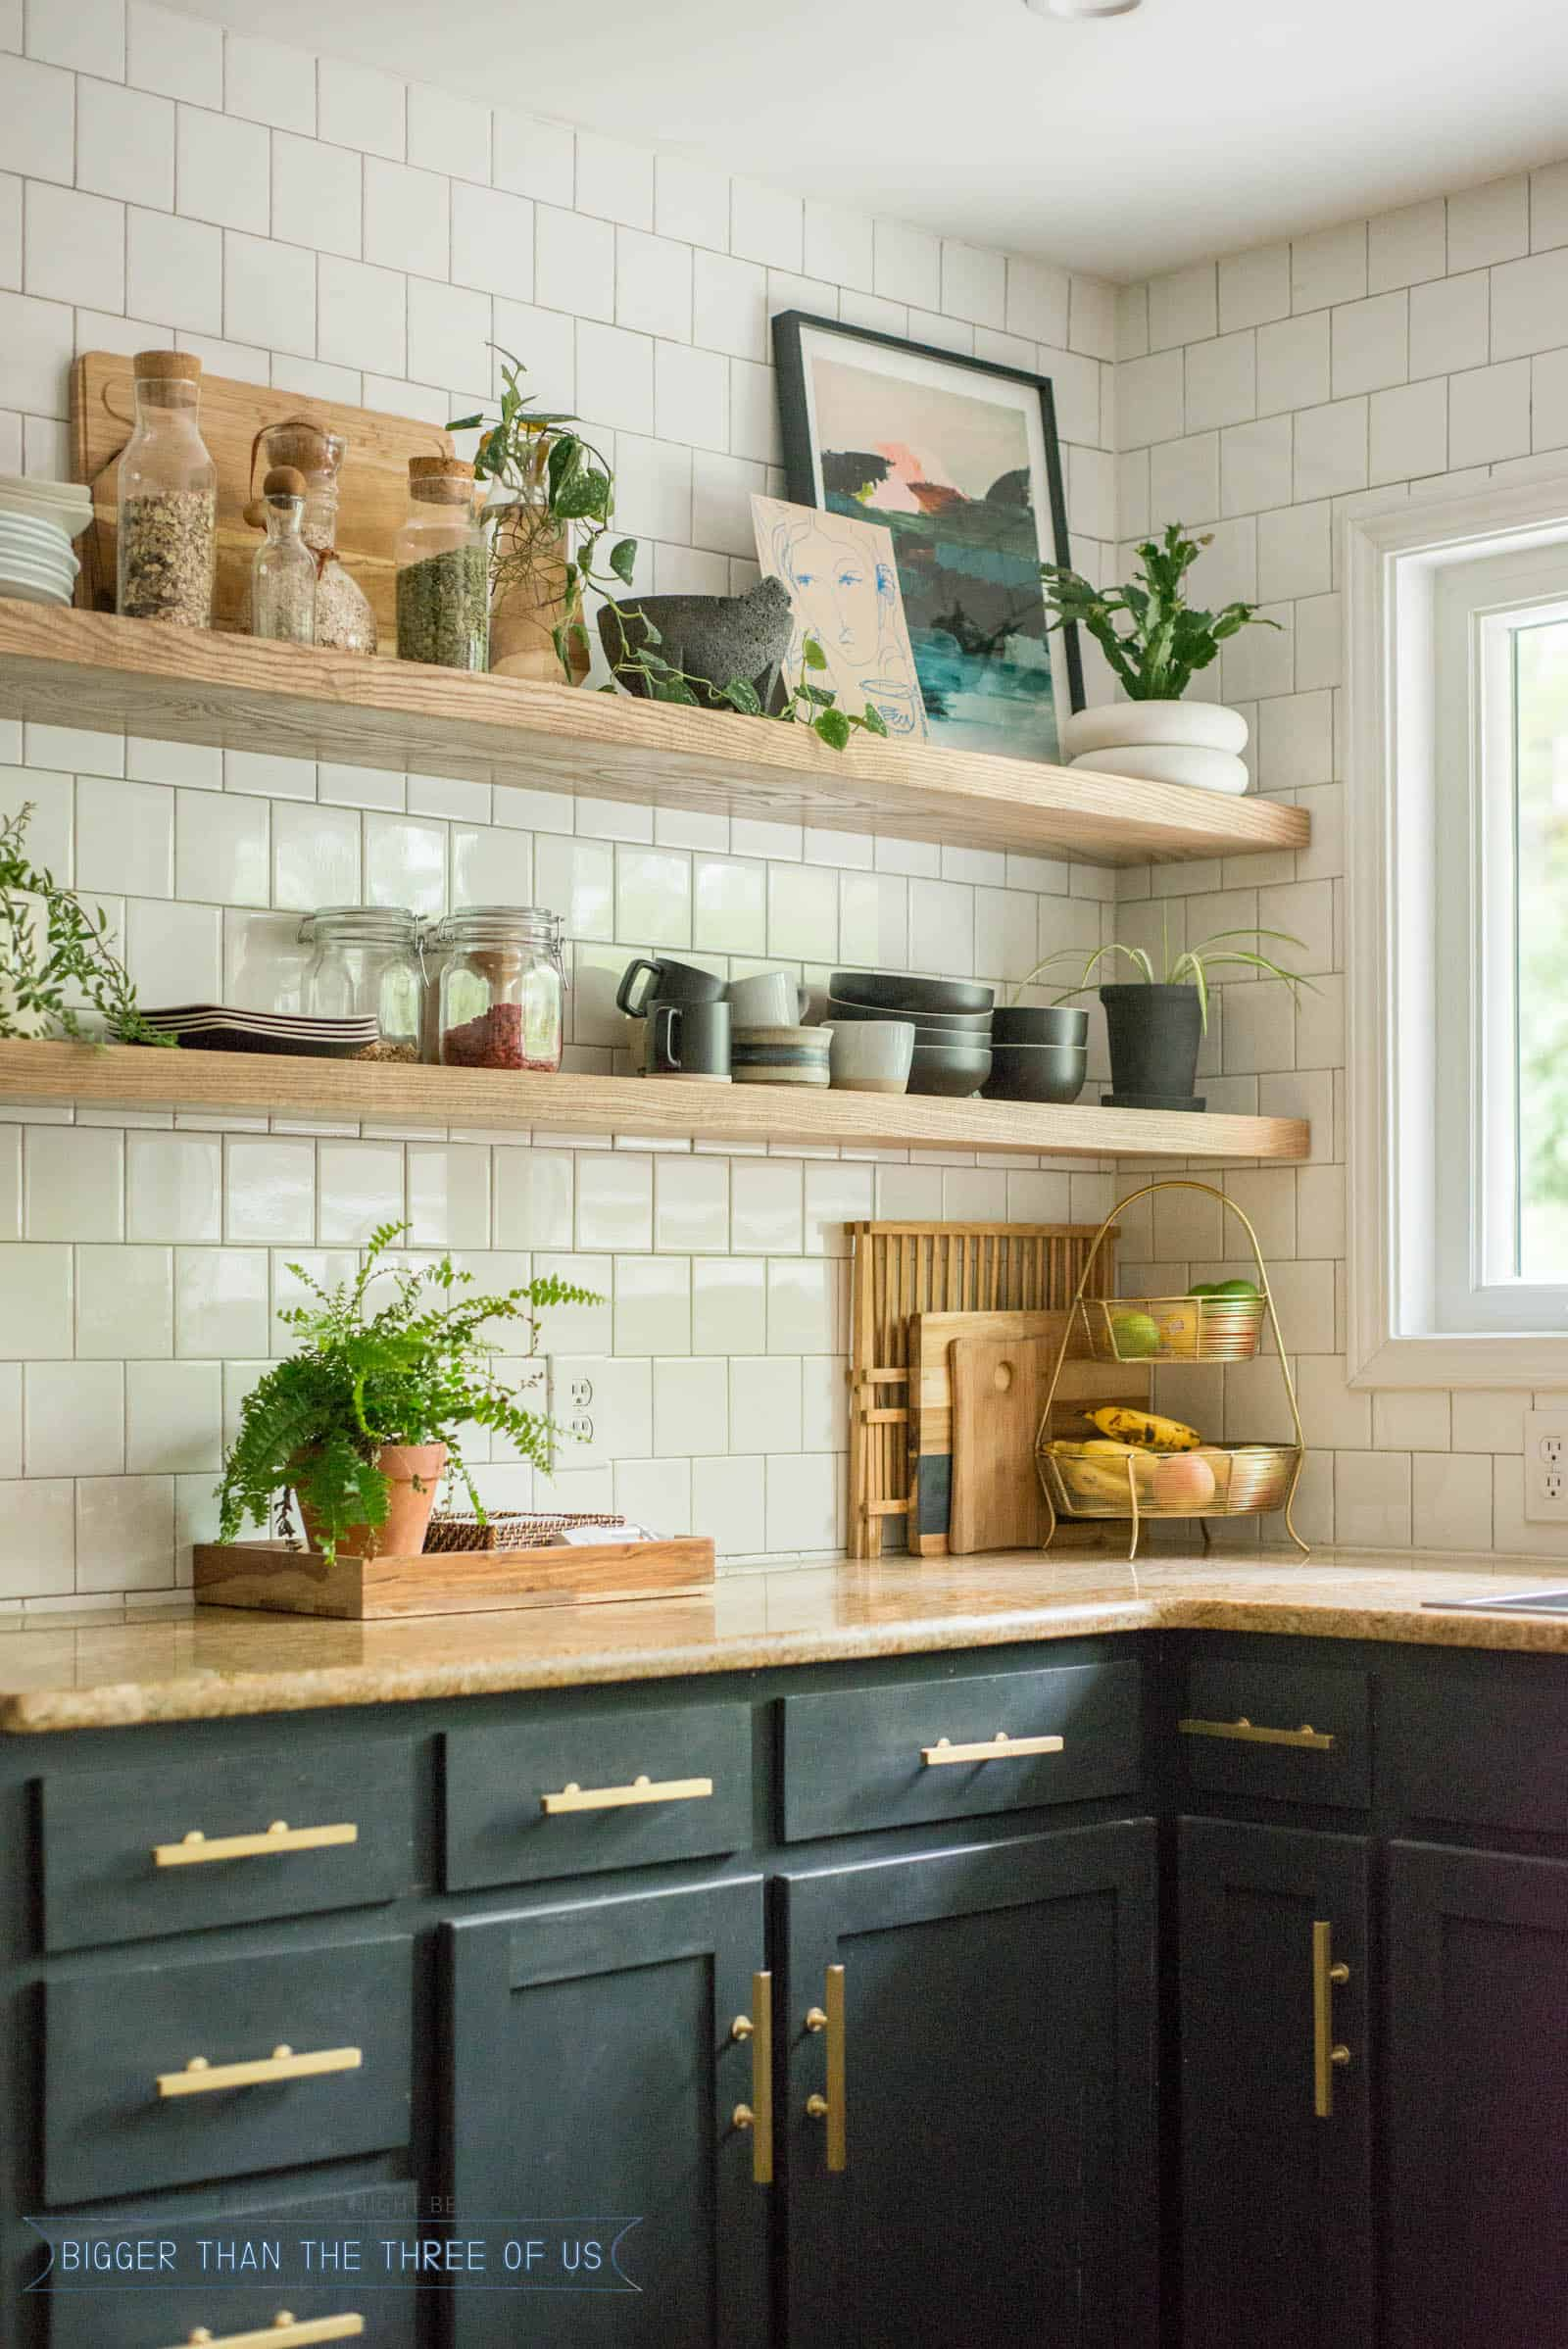 diy open shelving kitchen guide bigger than the three floating shelves that hold lot weight cabinets dresser ikea small basin and cabinet sink with mahogany fireplace mantel shelf